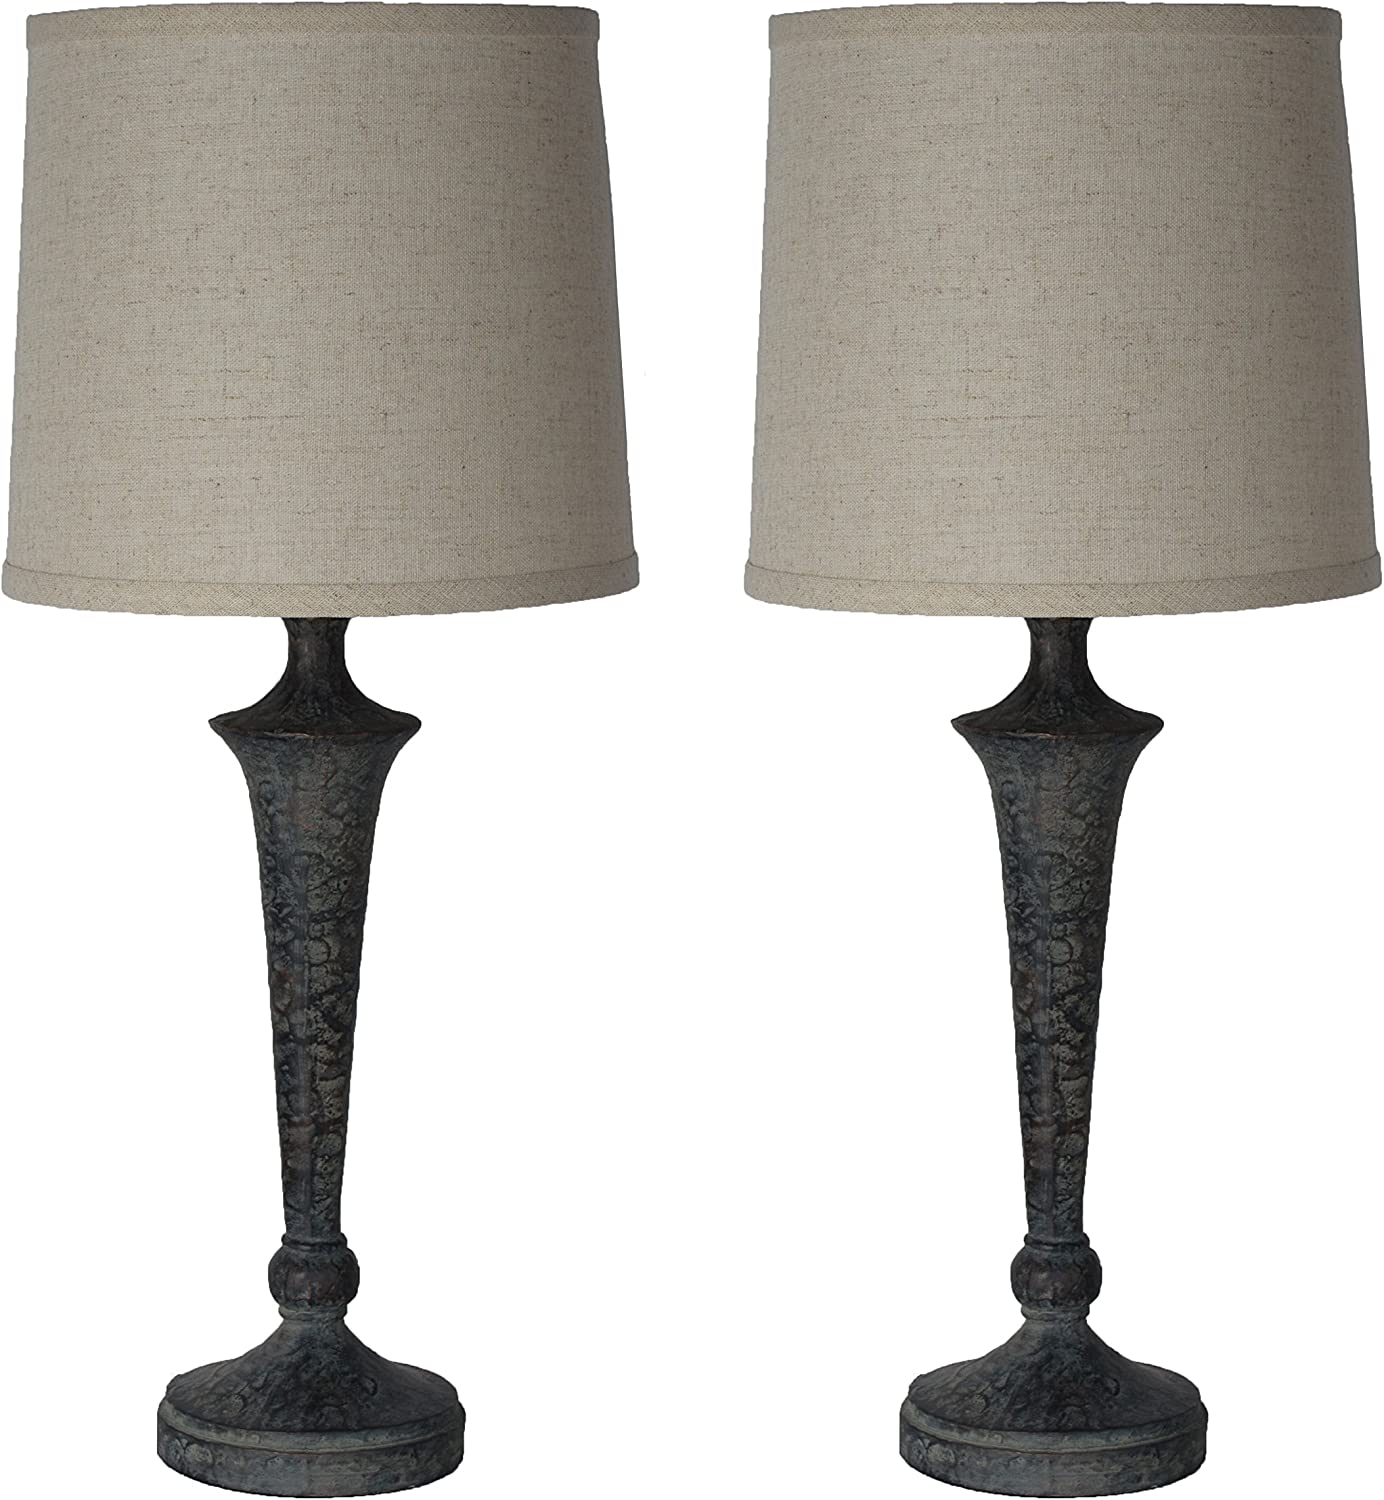 Urbanest Set of 2 Jacob Columbus Mall Max 41% OFF Table Bronze Lamps Ash